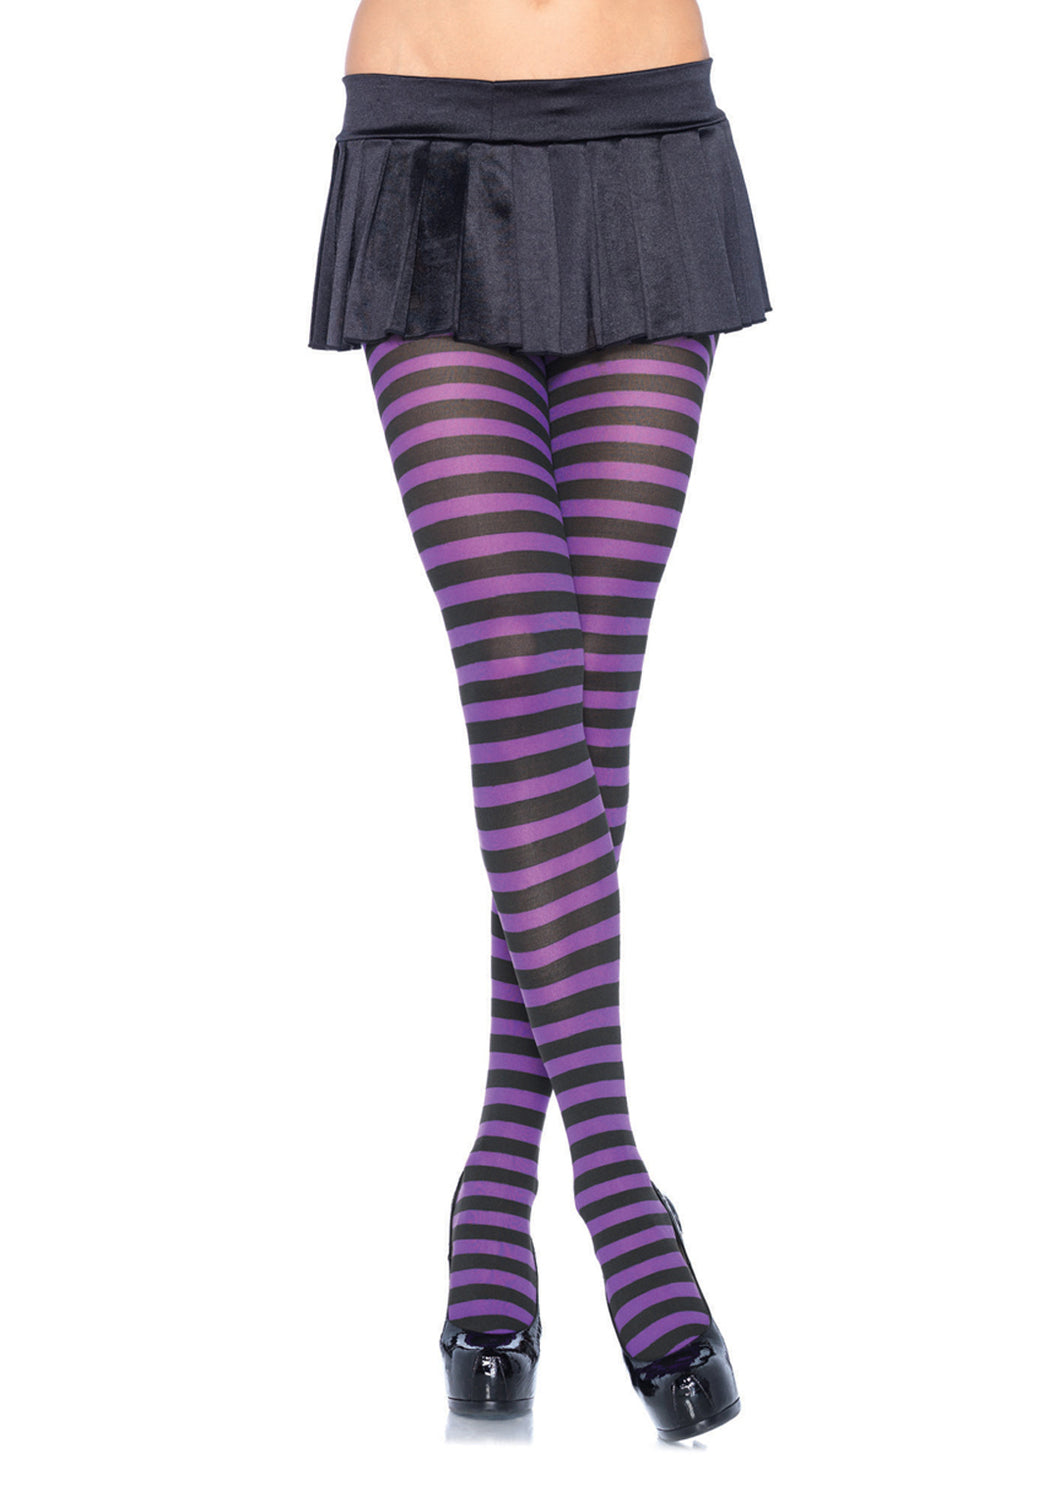 Leg Avenue Plus Size Striped Tights - Asst Colors